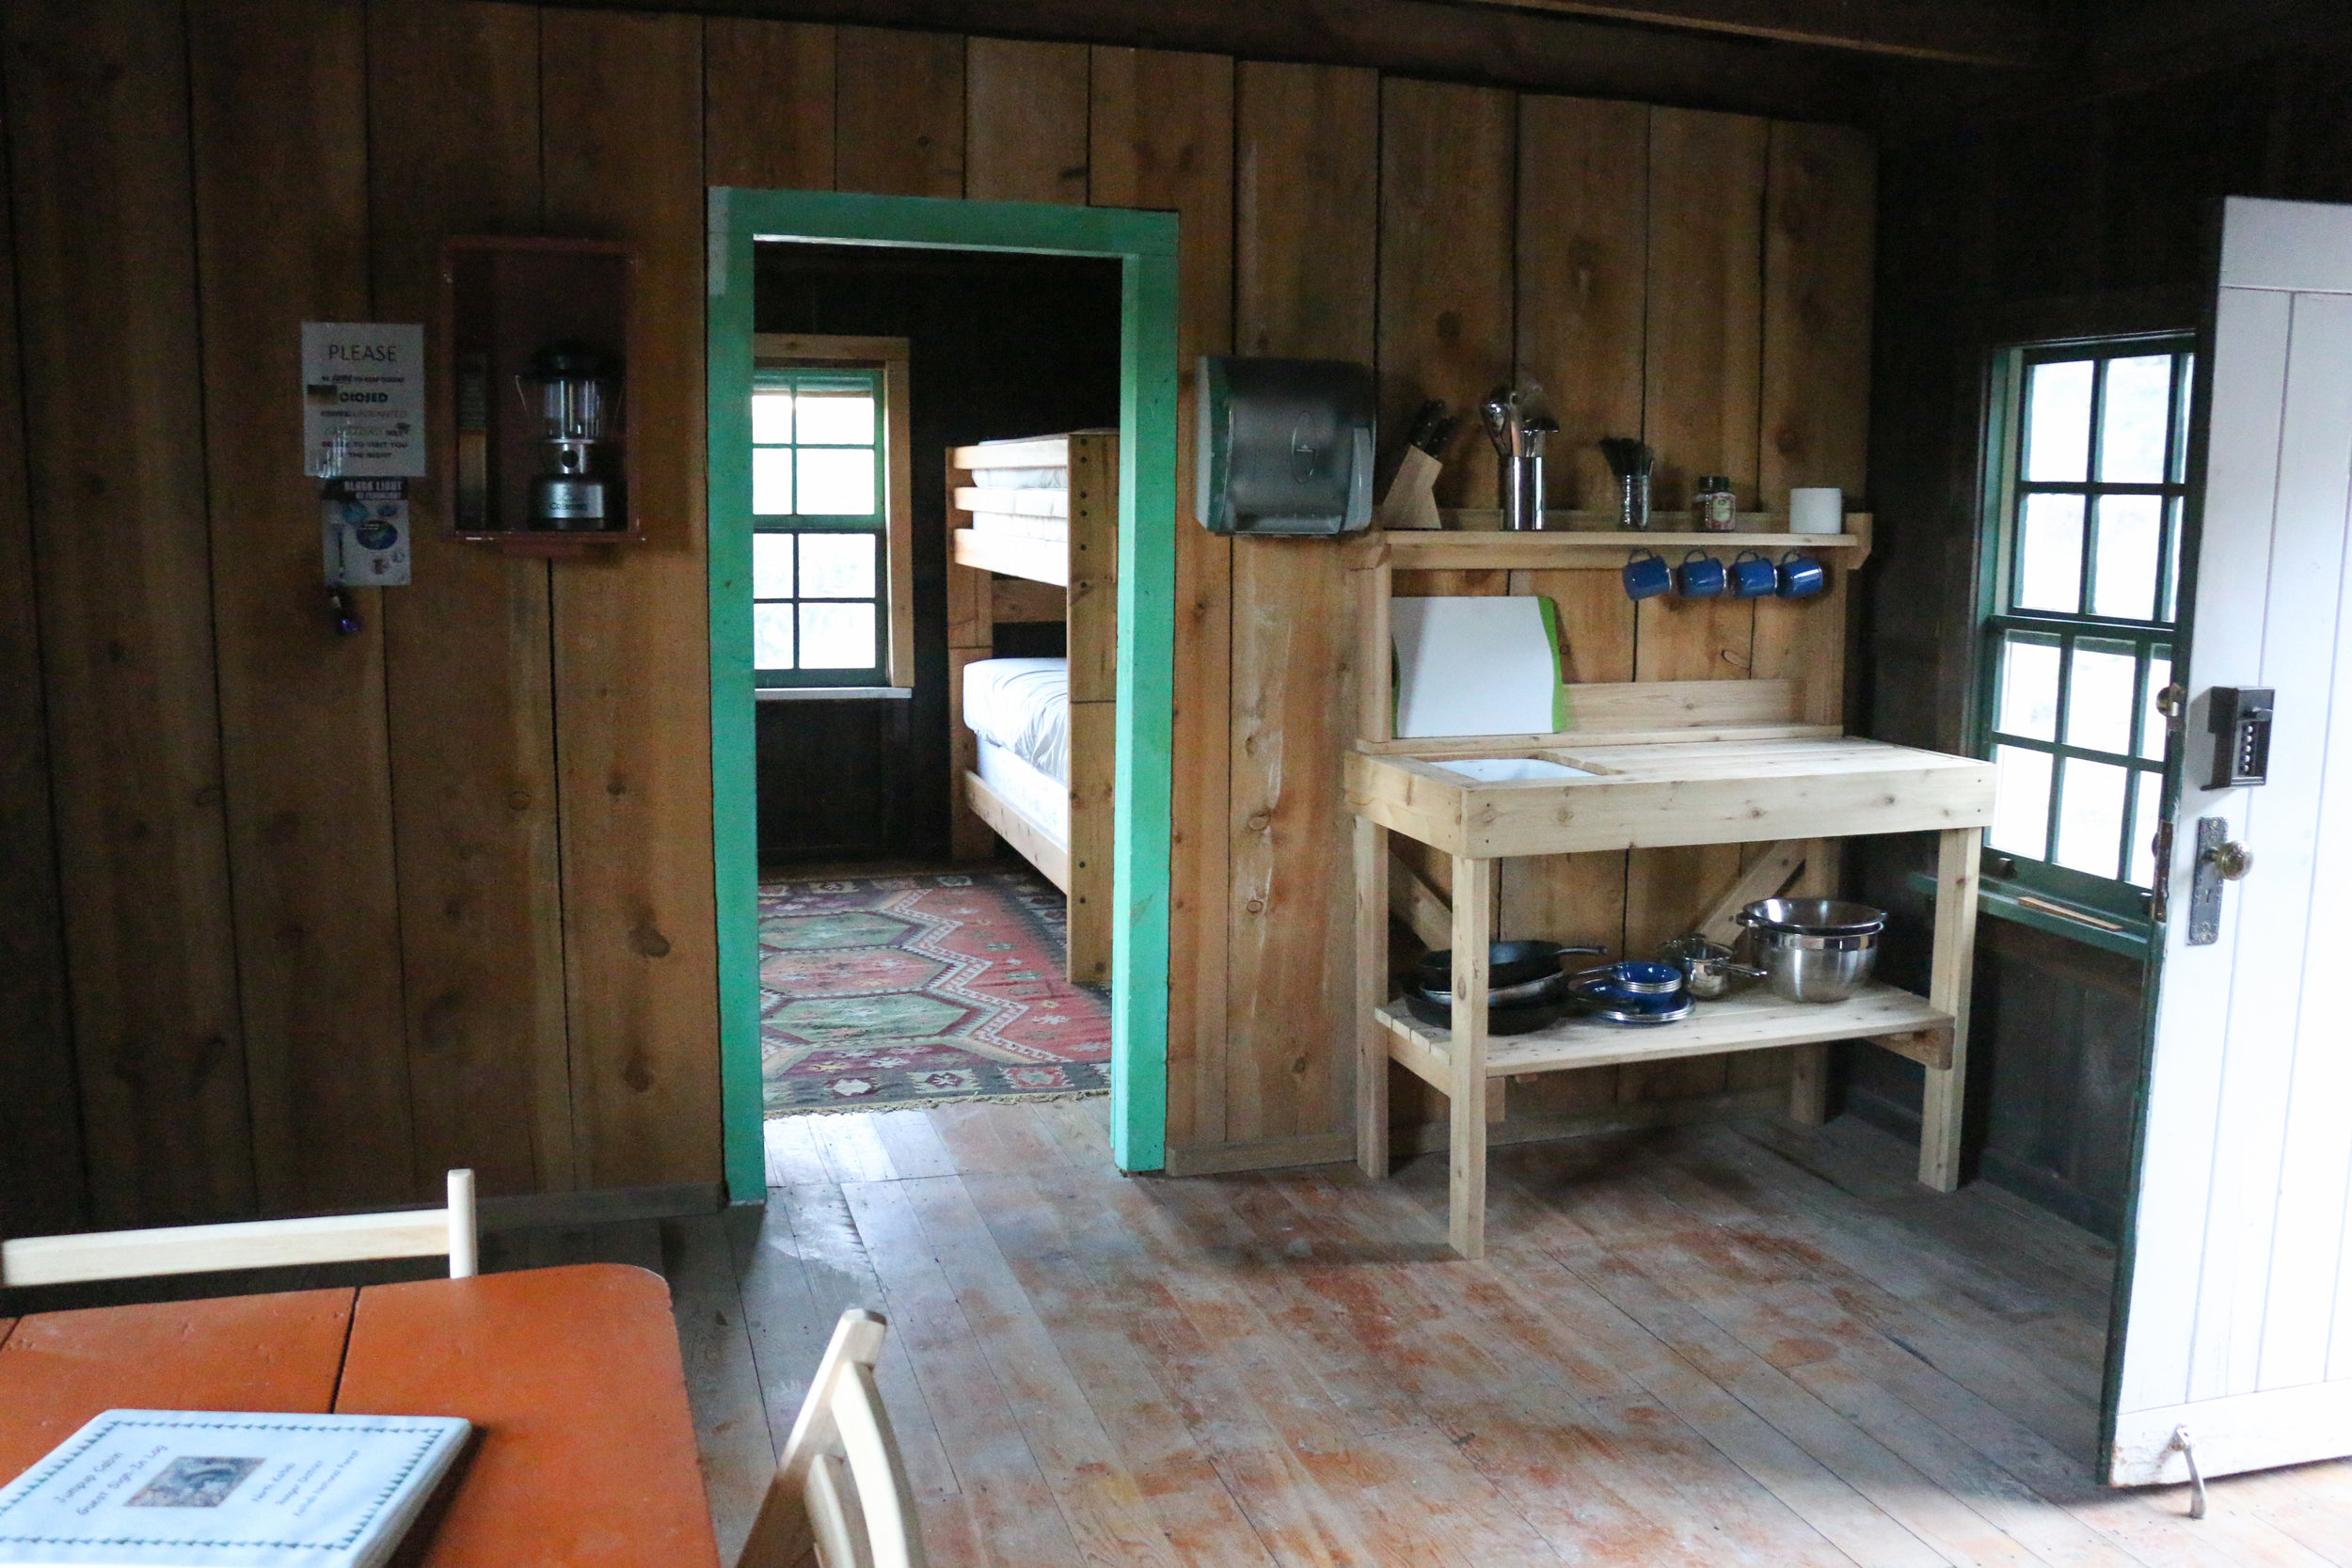 Inside our accommodations for the night: Jumpup Cabin.